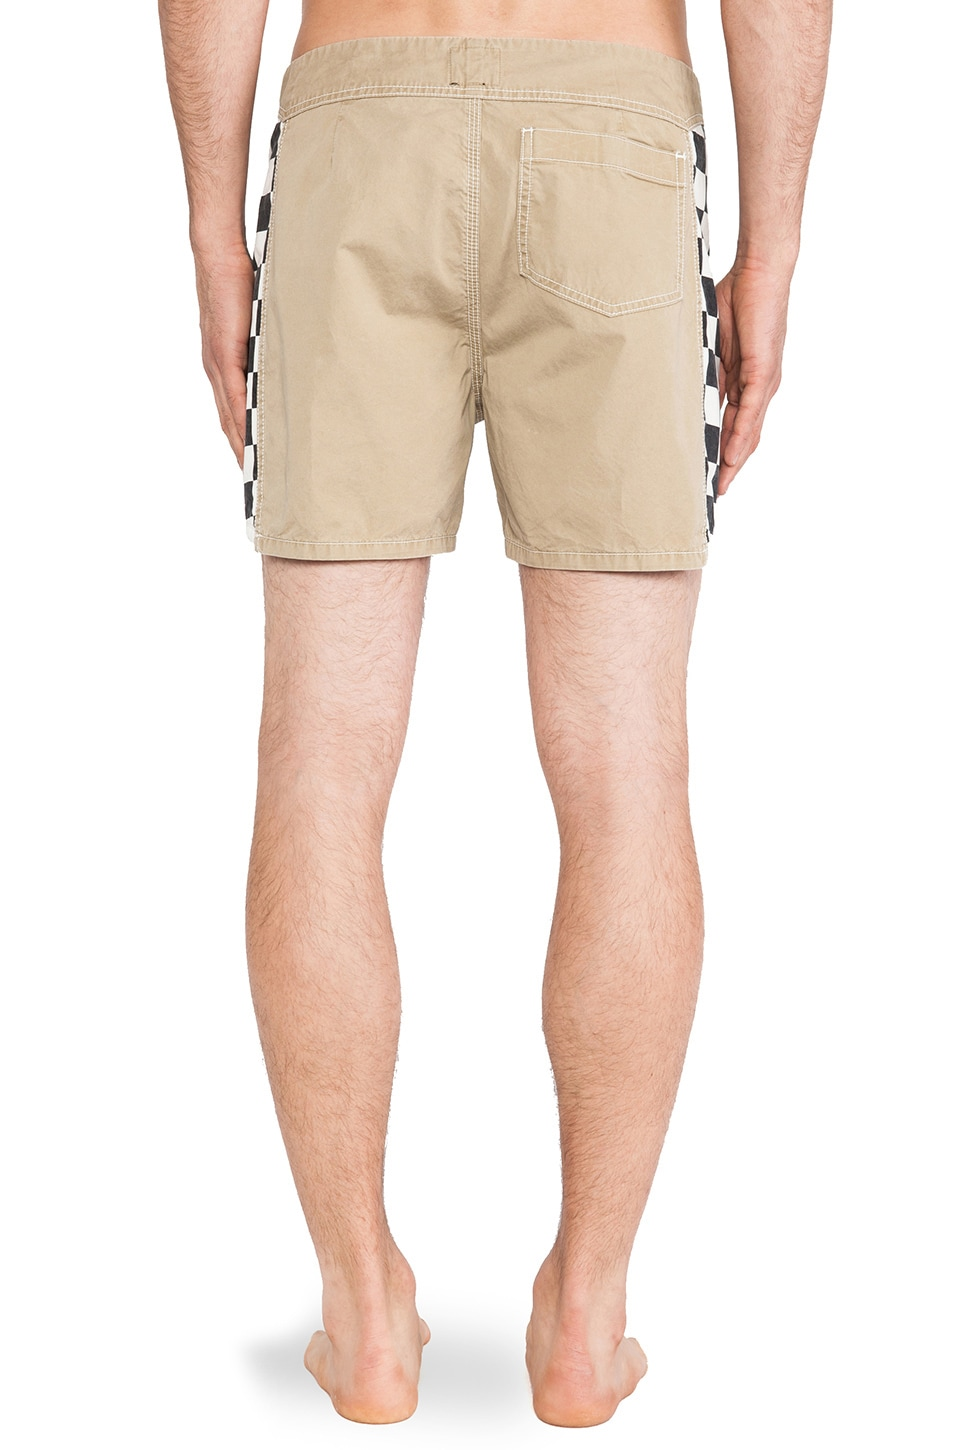 "Quiksilver Originals Arch 15"" Boardshort in Khaki"